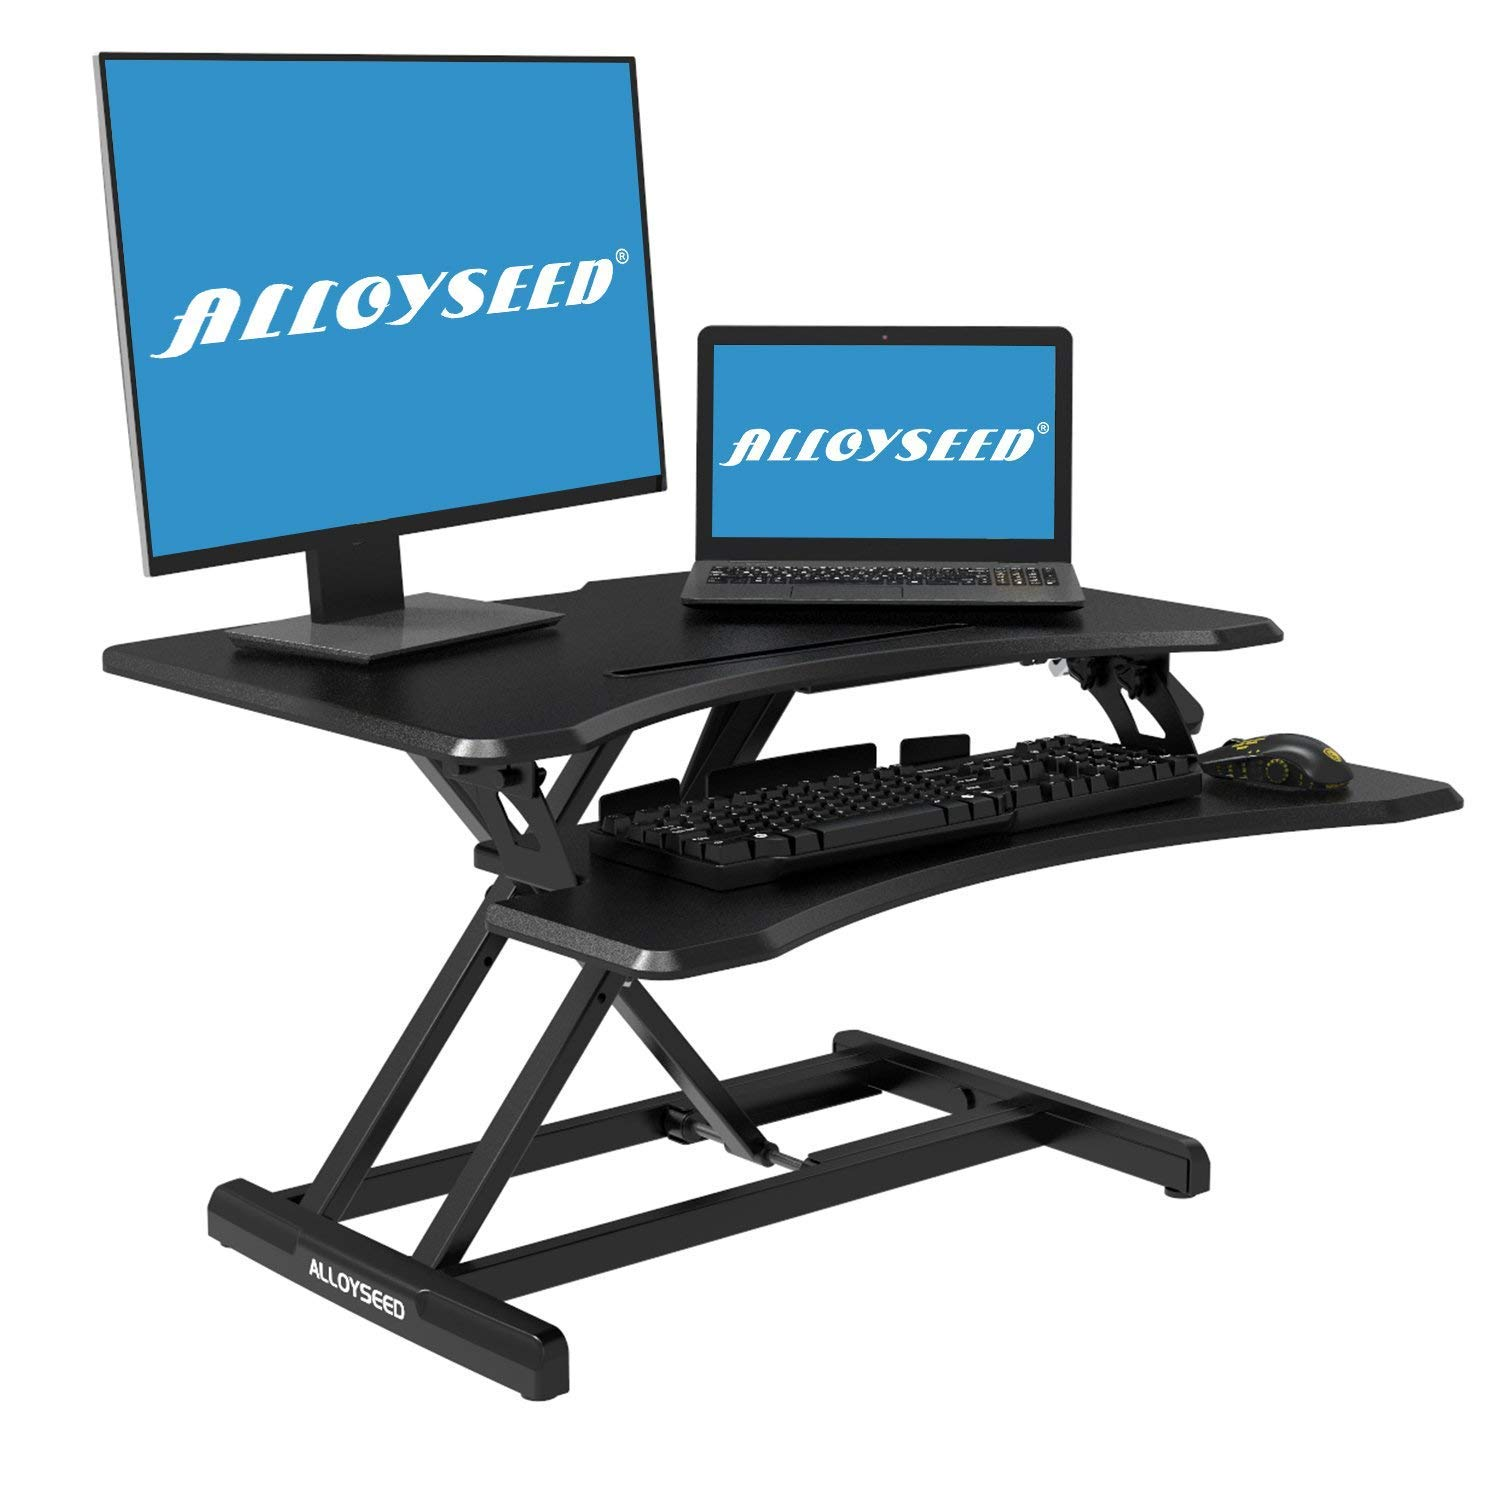 Height Adjustable Standing Desk, Alloyseed Stand Up Desk Converter Ergonomic Sit Stand Gas Spring Riser Workstation, with Quick Release Keyboard Tray (manumotive)